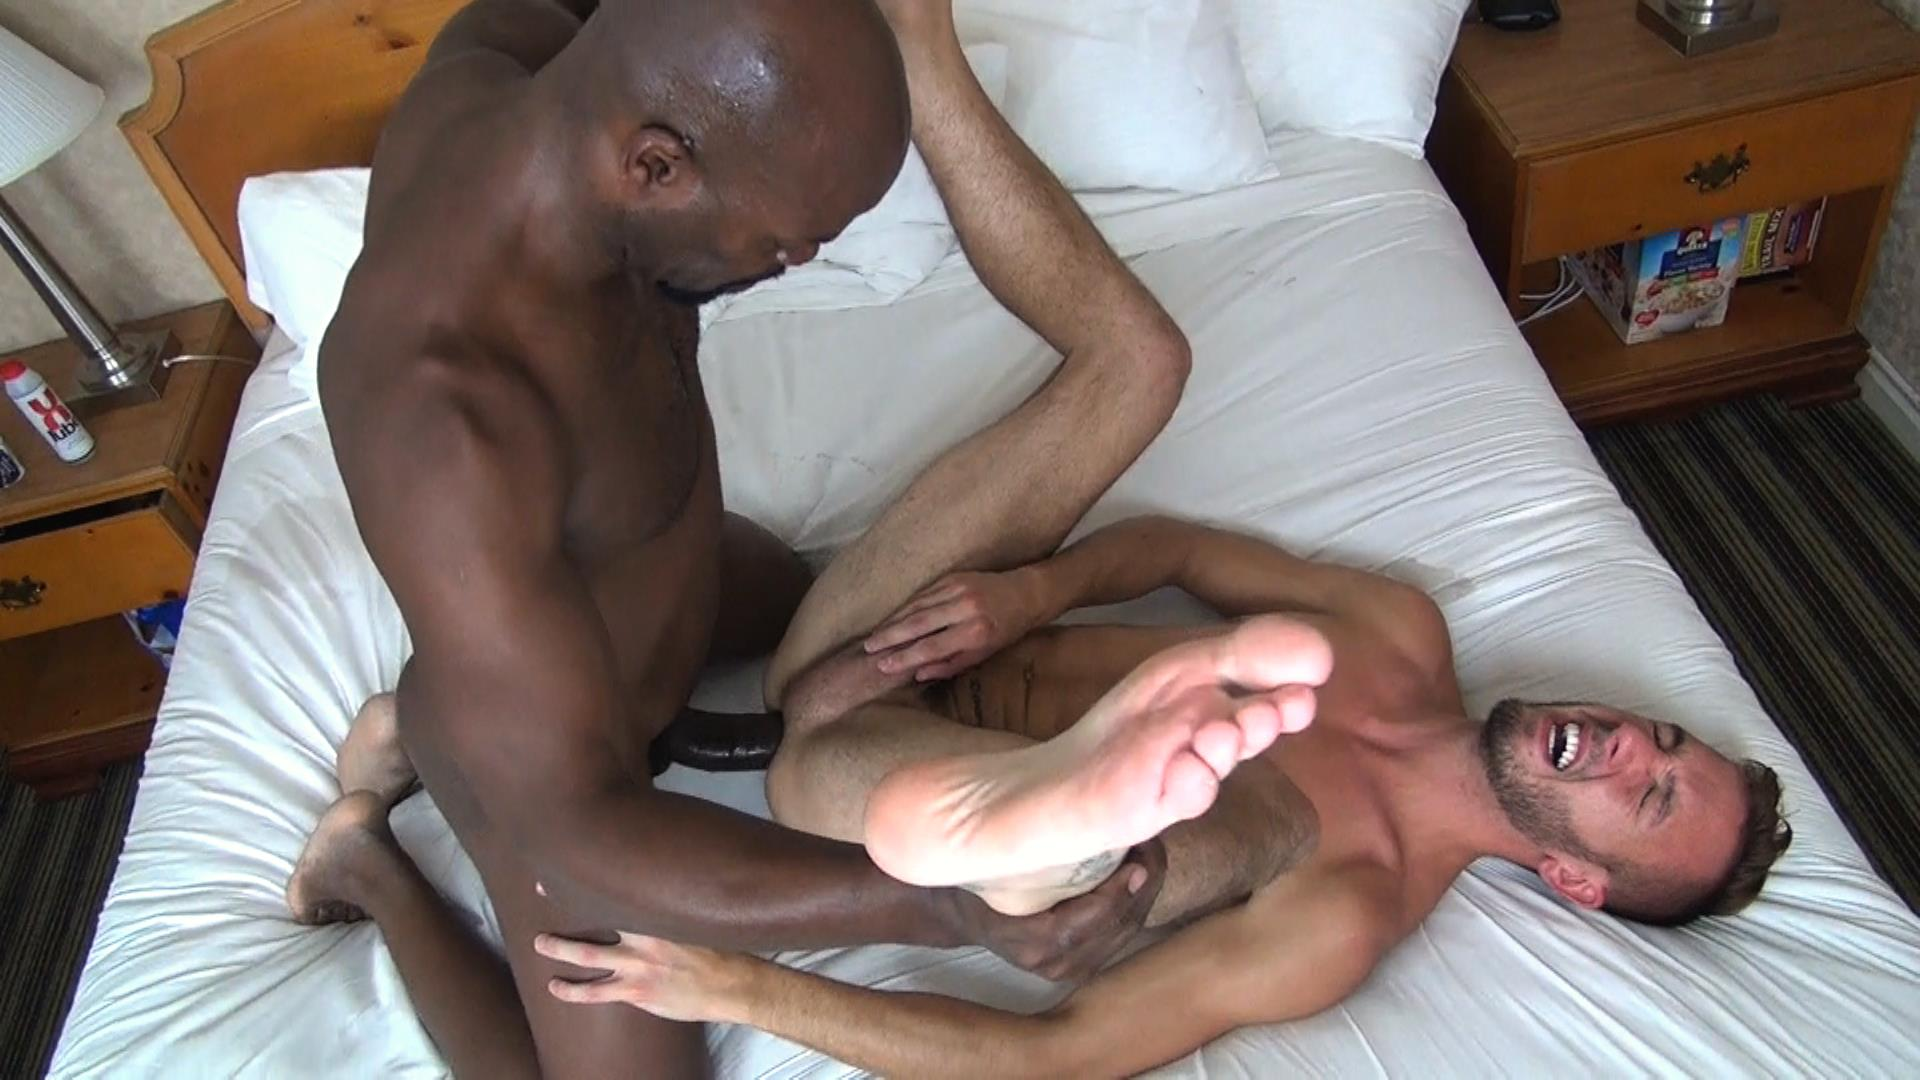 Raw Fuck Club Adam Russo and Cutler X and Dylan Strokes Interracial Bareback Big Black Cock Amateur Gay Porn 5 Interracial Boyfriends Adam Russo and Cutler X Barebacking Dylan Strokes